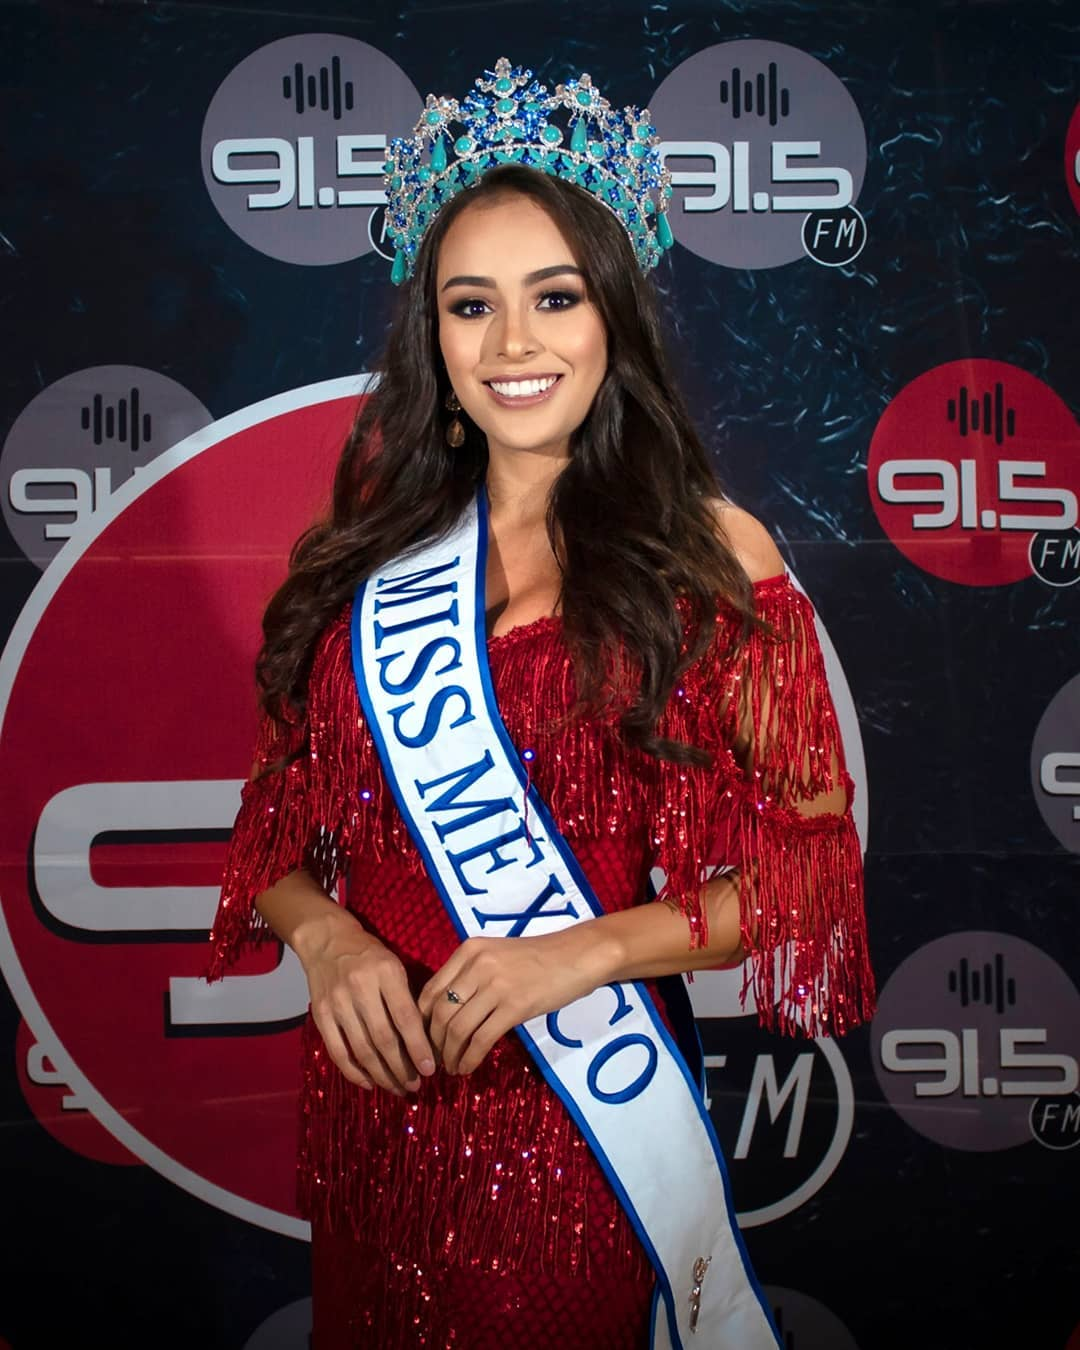 ashley alvidrez, top 12 de miss world 2019. - Página 5 70957810